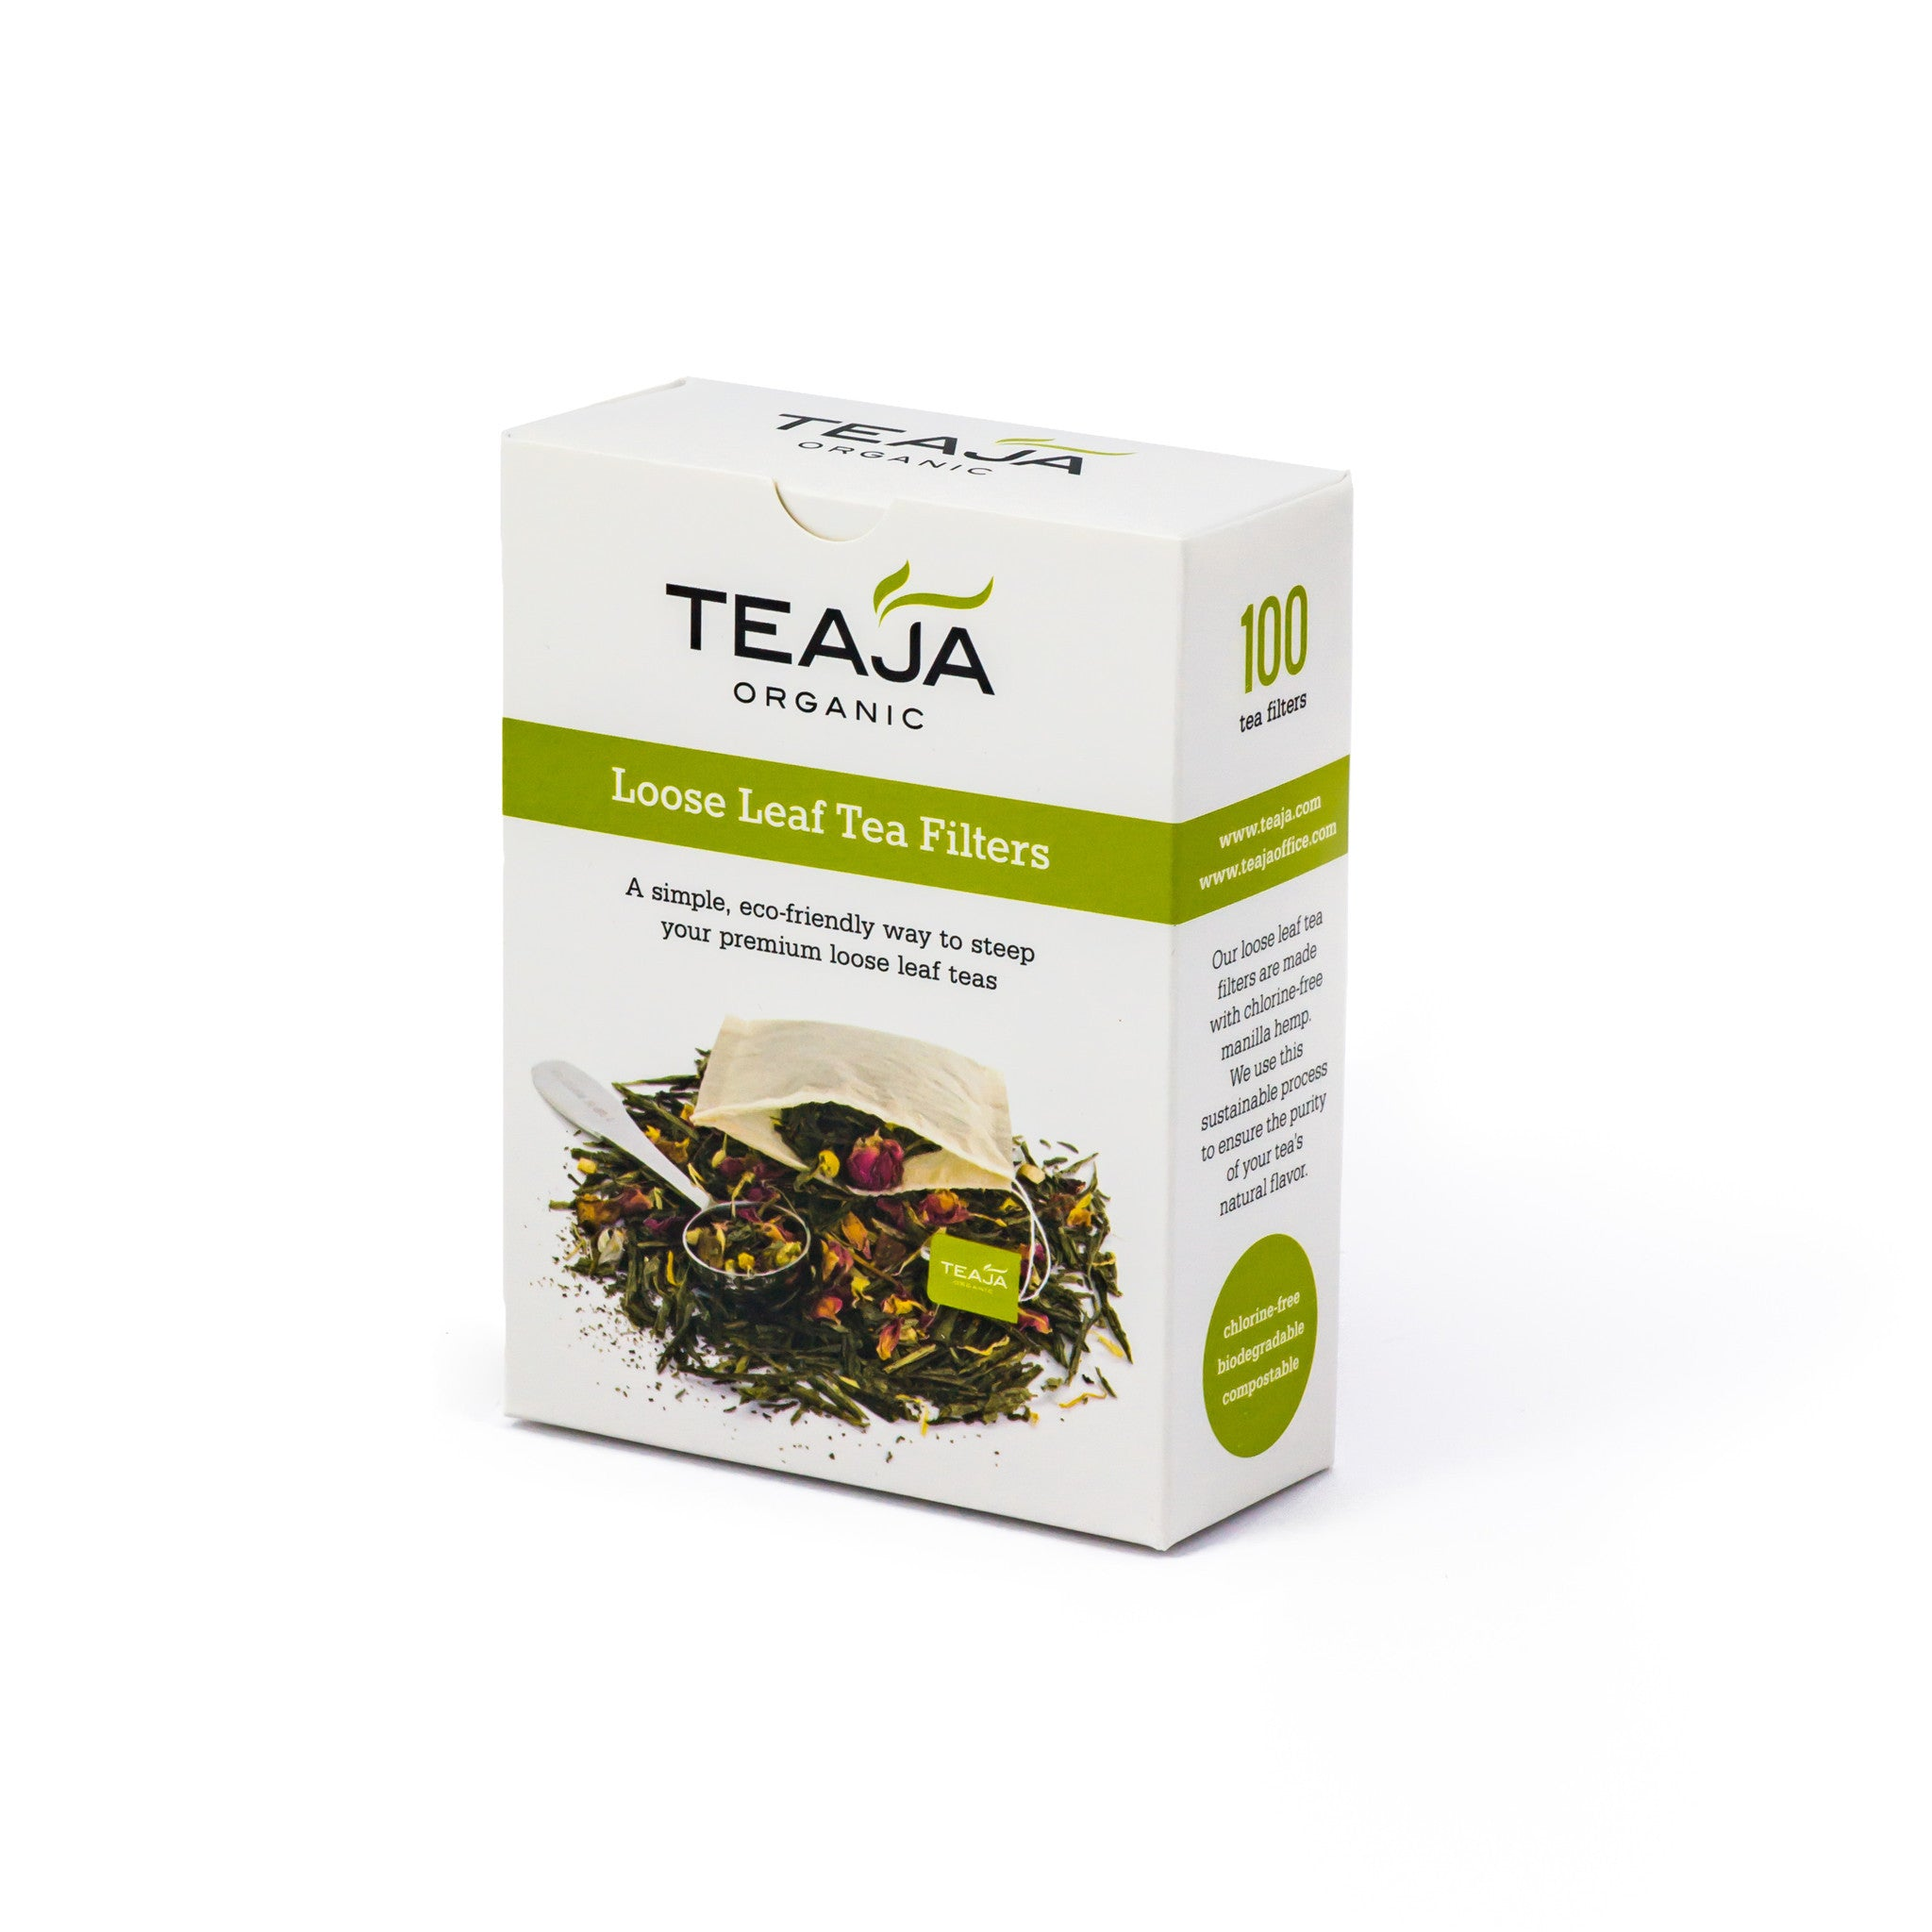 Teaja Loose Leaf Tea Filters Box Of 100